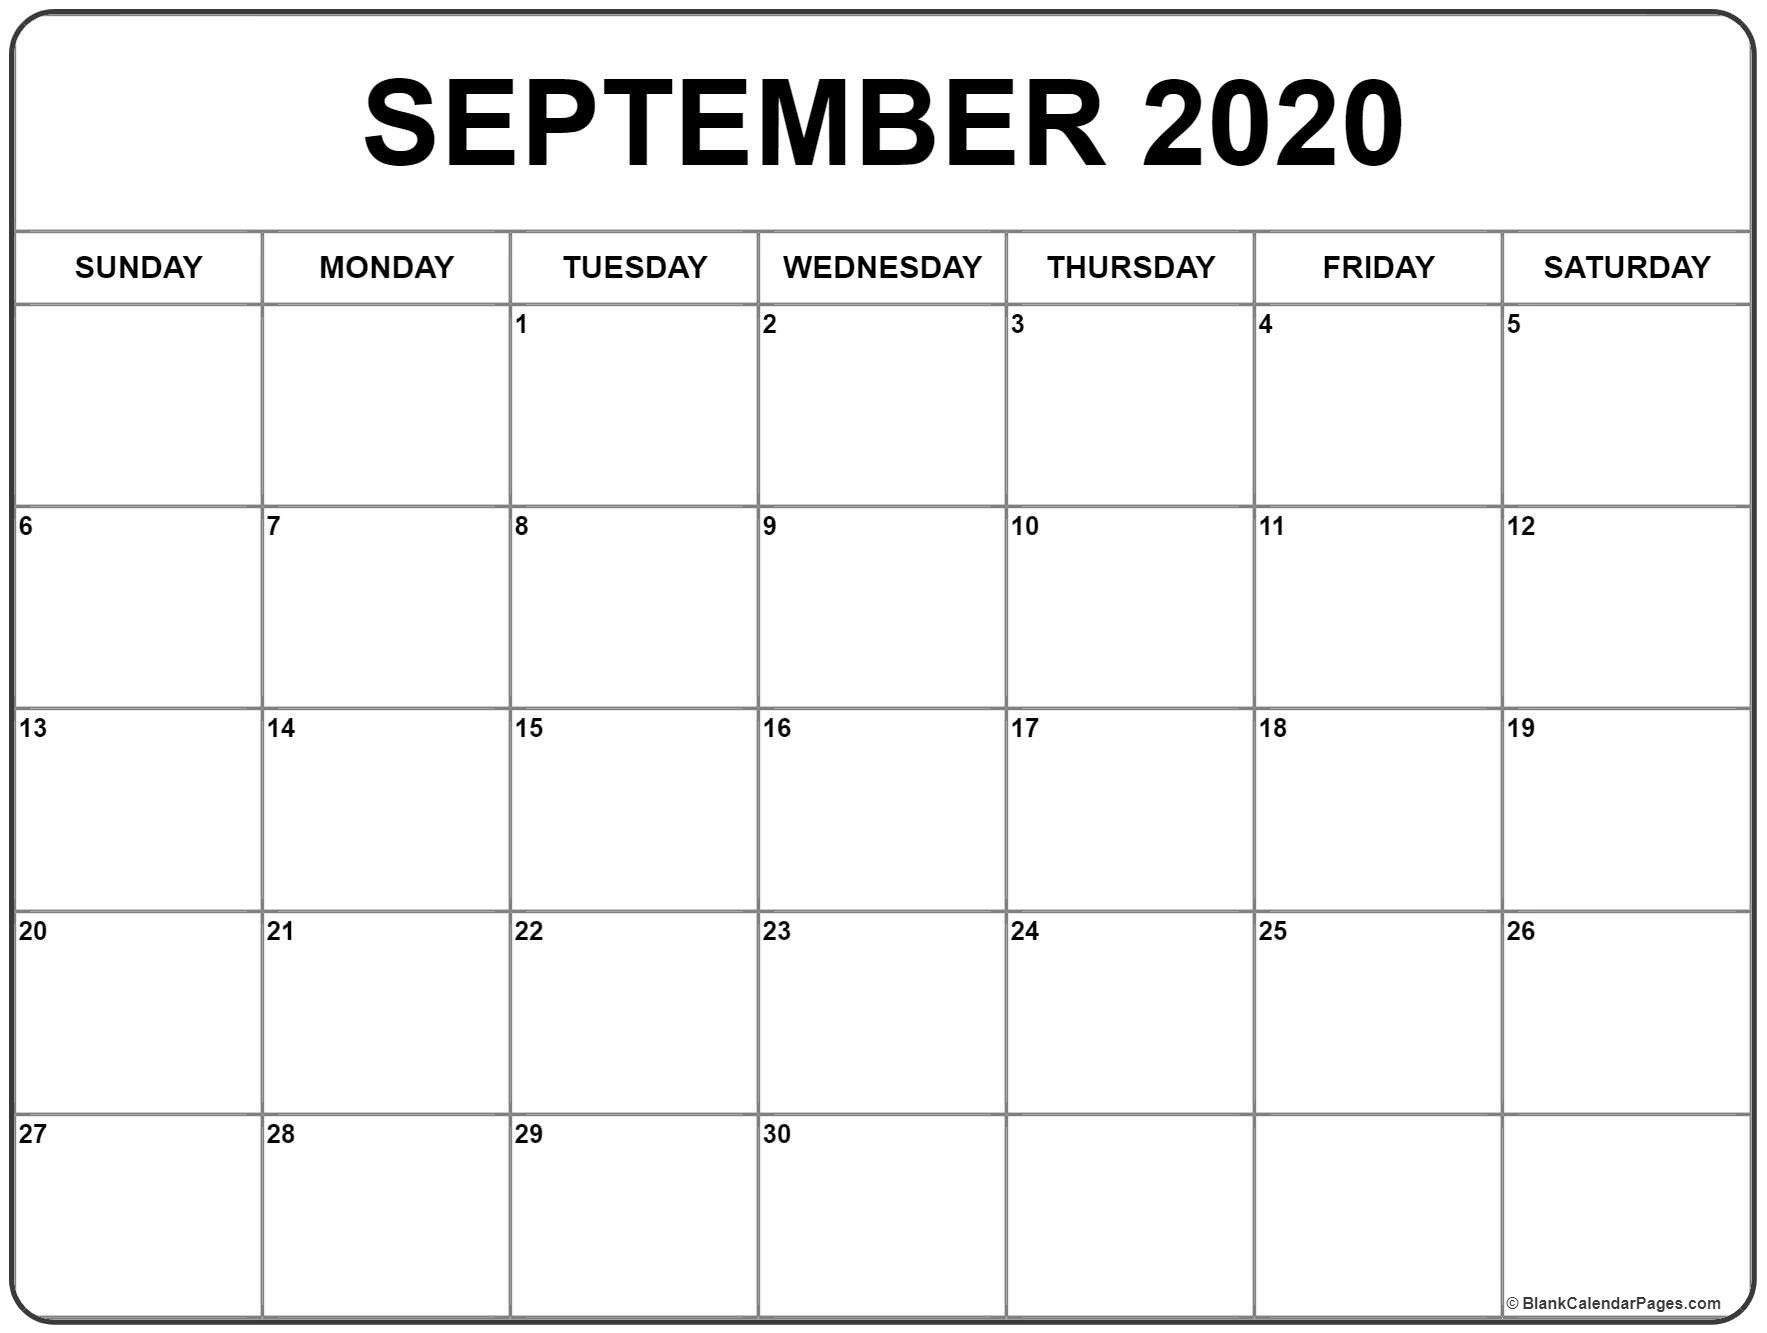 September 2020 Calendar 51 Calendar Templates Of 2020 intended for Free Printable Monthly Calendar September 2020